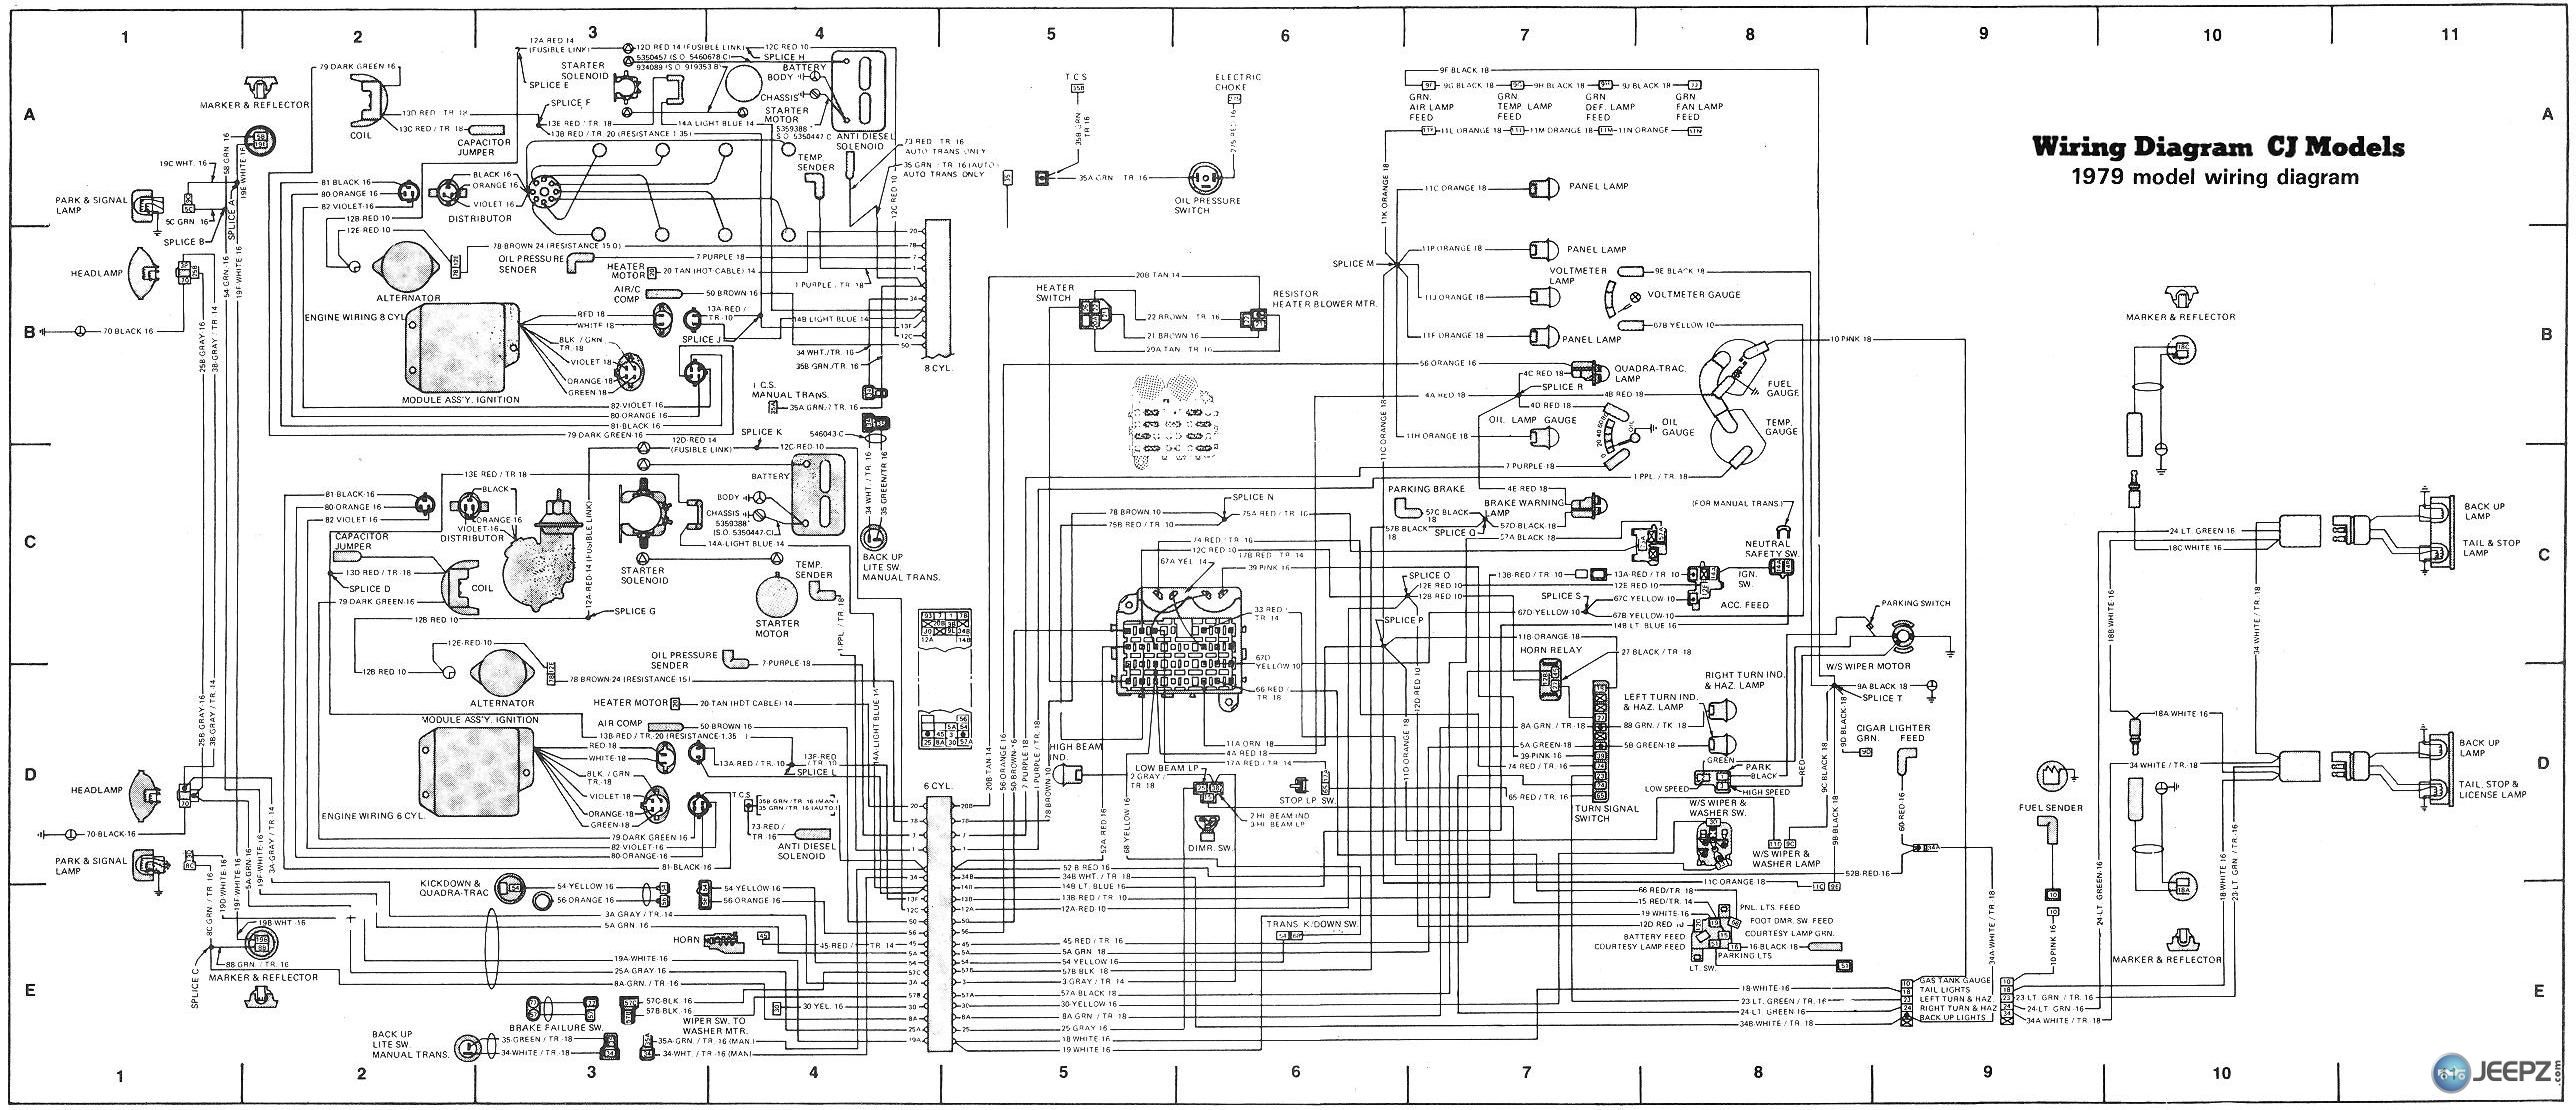 1991 jeep wrangler wiring diagram roc grp org at jeep diagrams 95 jeep wrangler radio wiring [ 2576 x 1110 Pixel ]